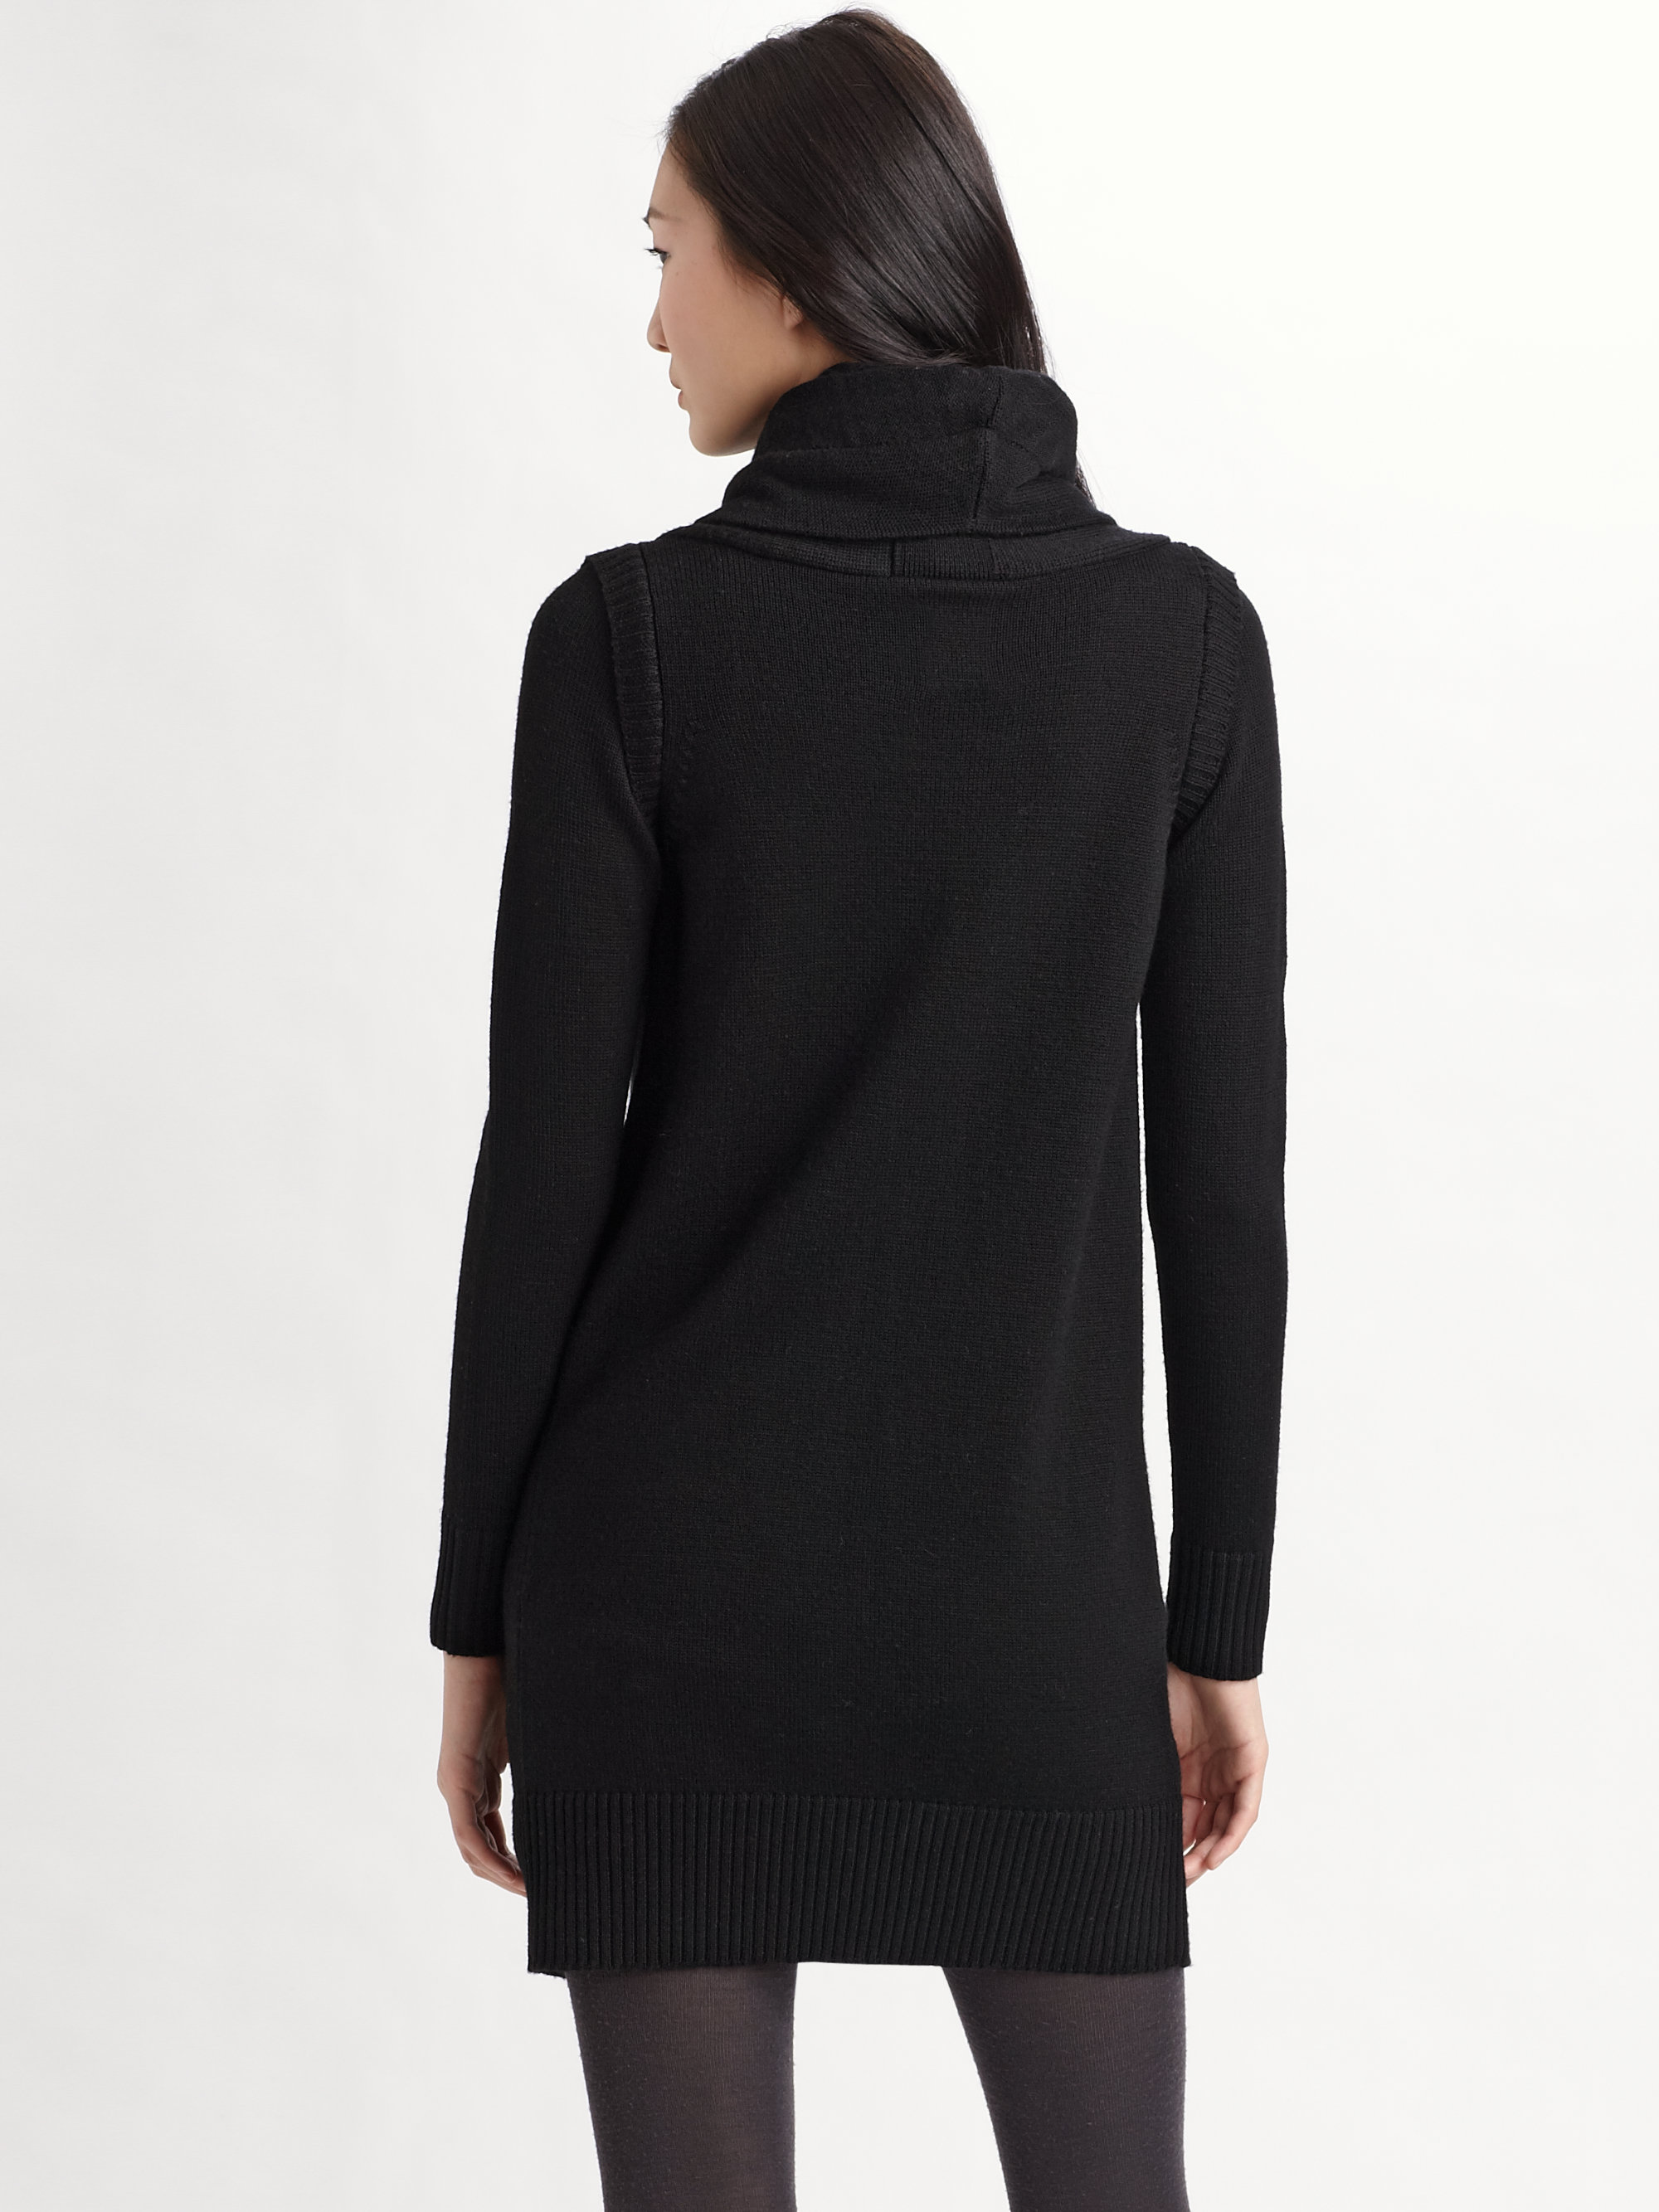 Jnby Wool Sweater Coat in Black | Lyst